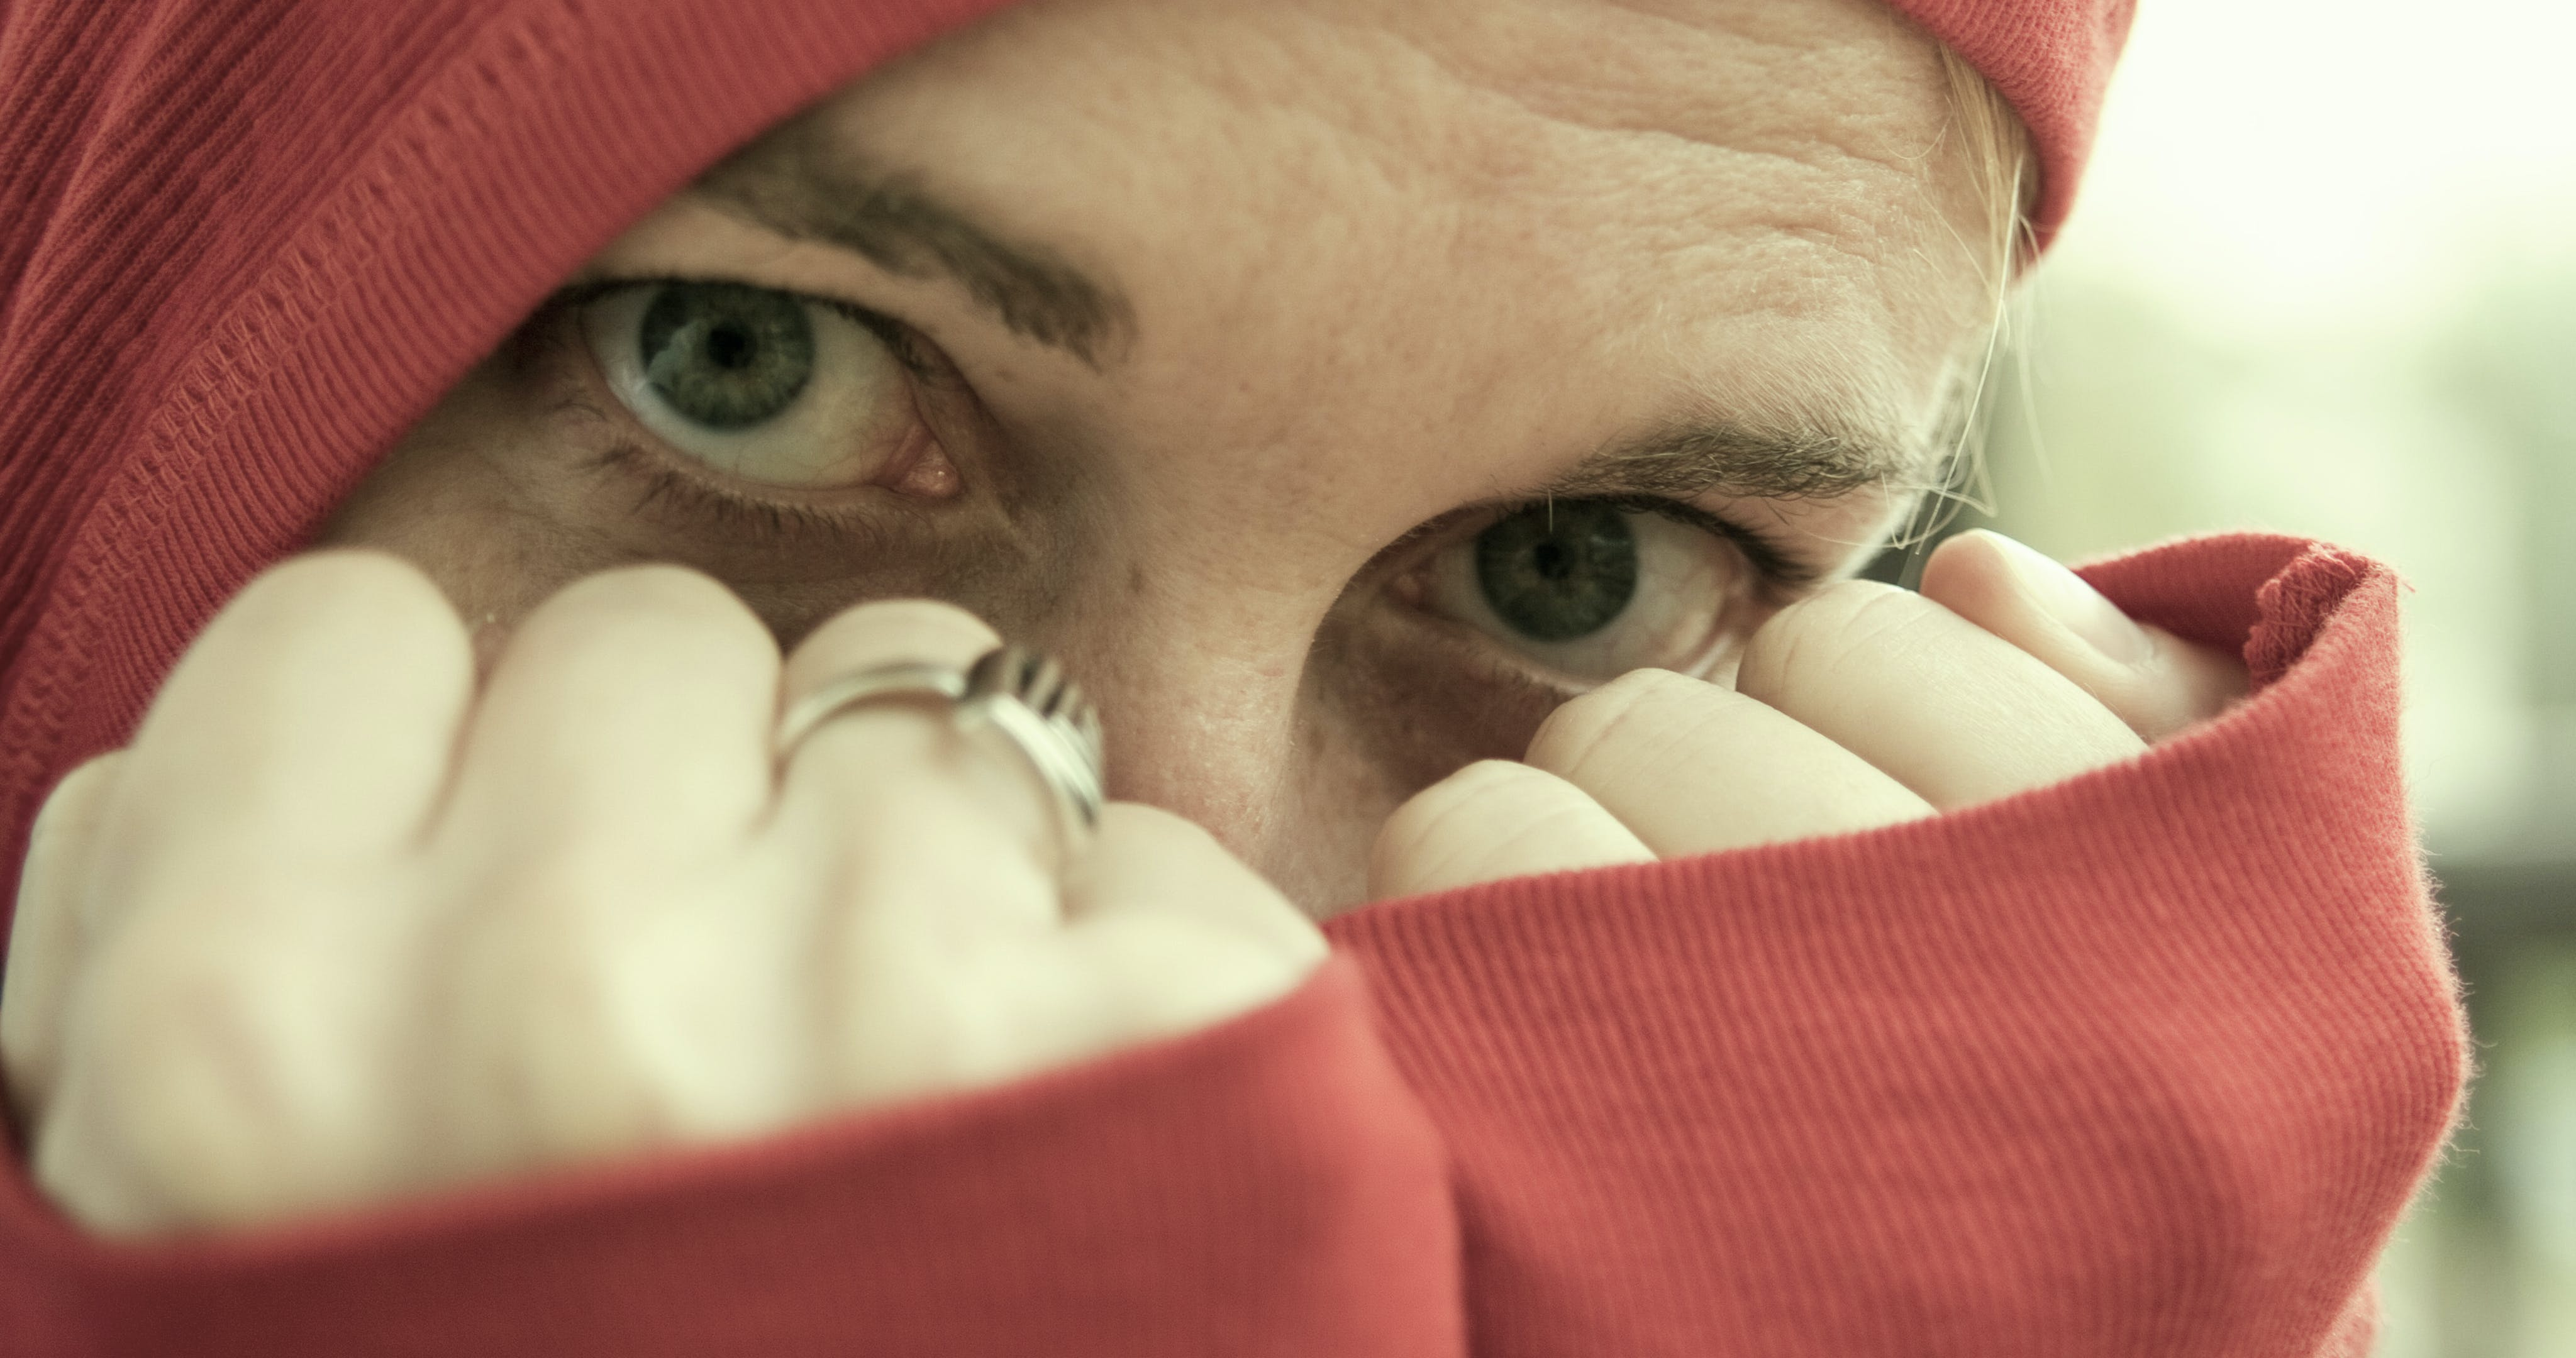 Person Wearing Red Hoodie and Gold-colored Ring Covering Face With Both Fists